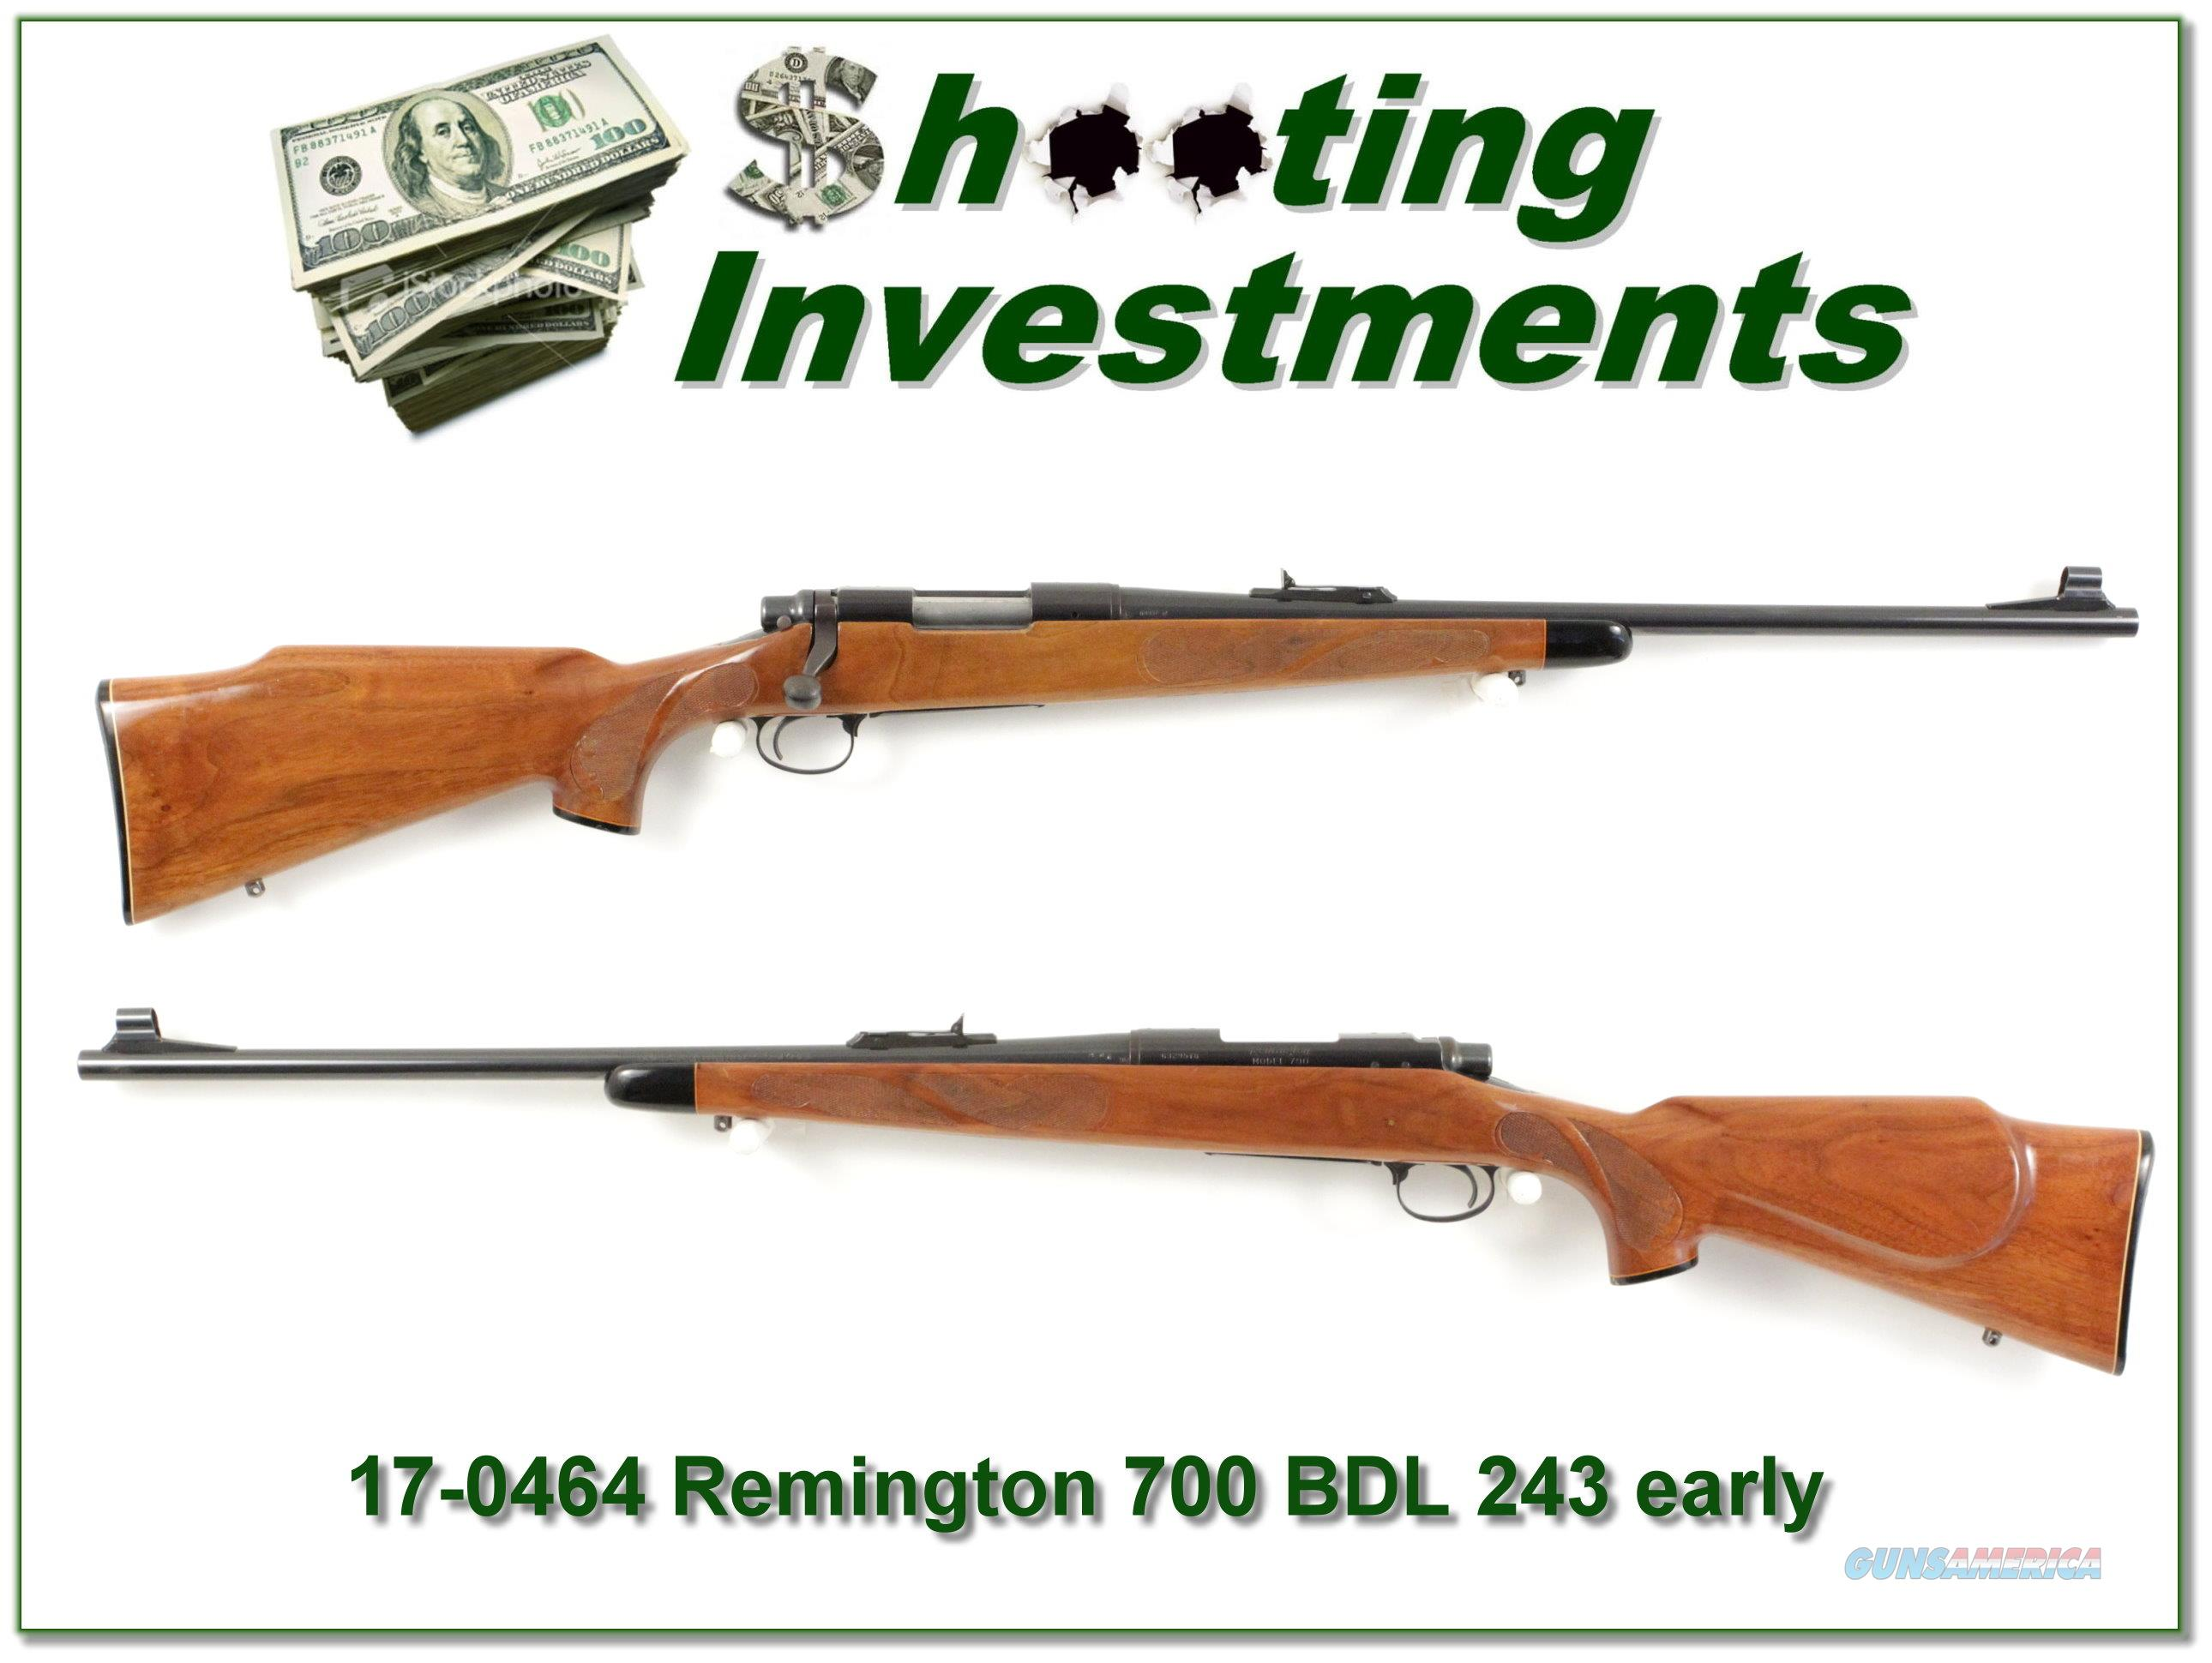 Remington 700 BDL early 243 Pressed Checkering  Guns > Rifles > Remington Rifles - Modern > Model 700 > Sporting